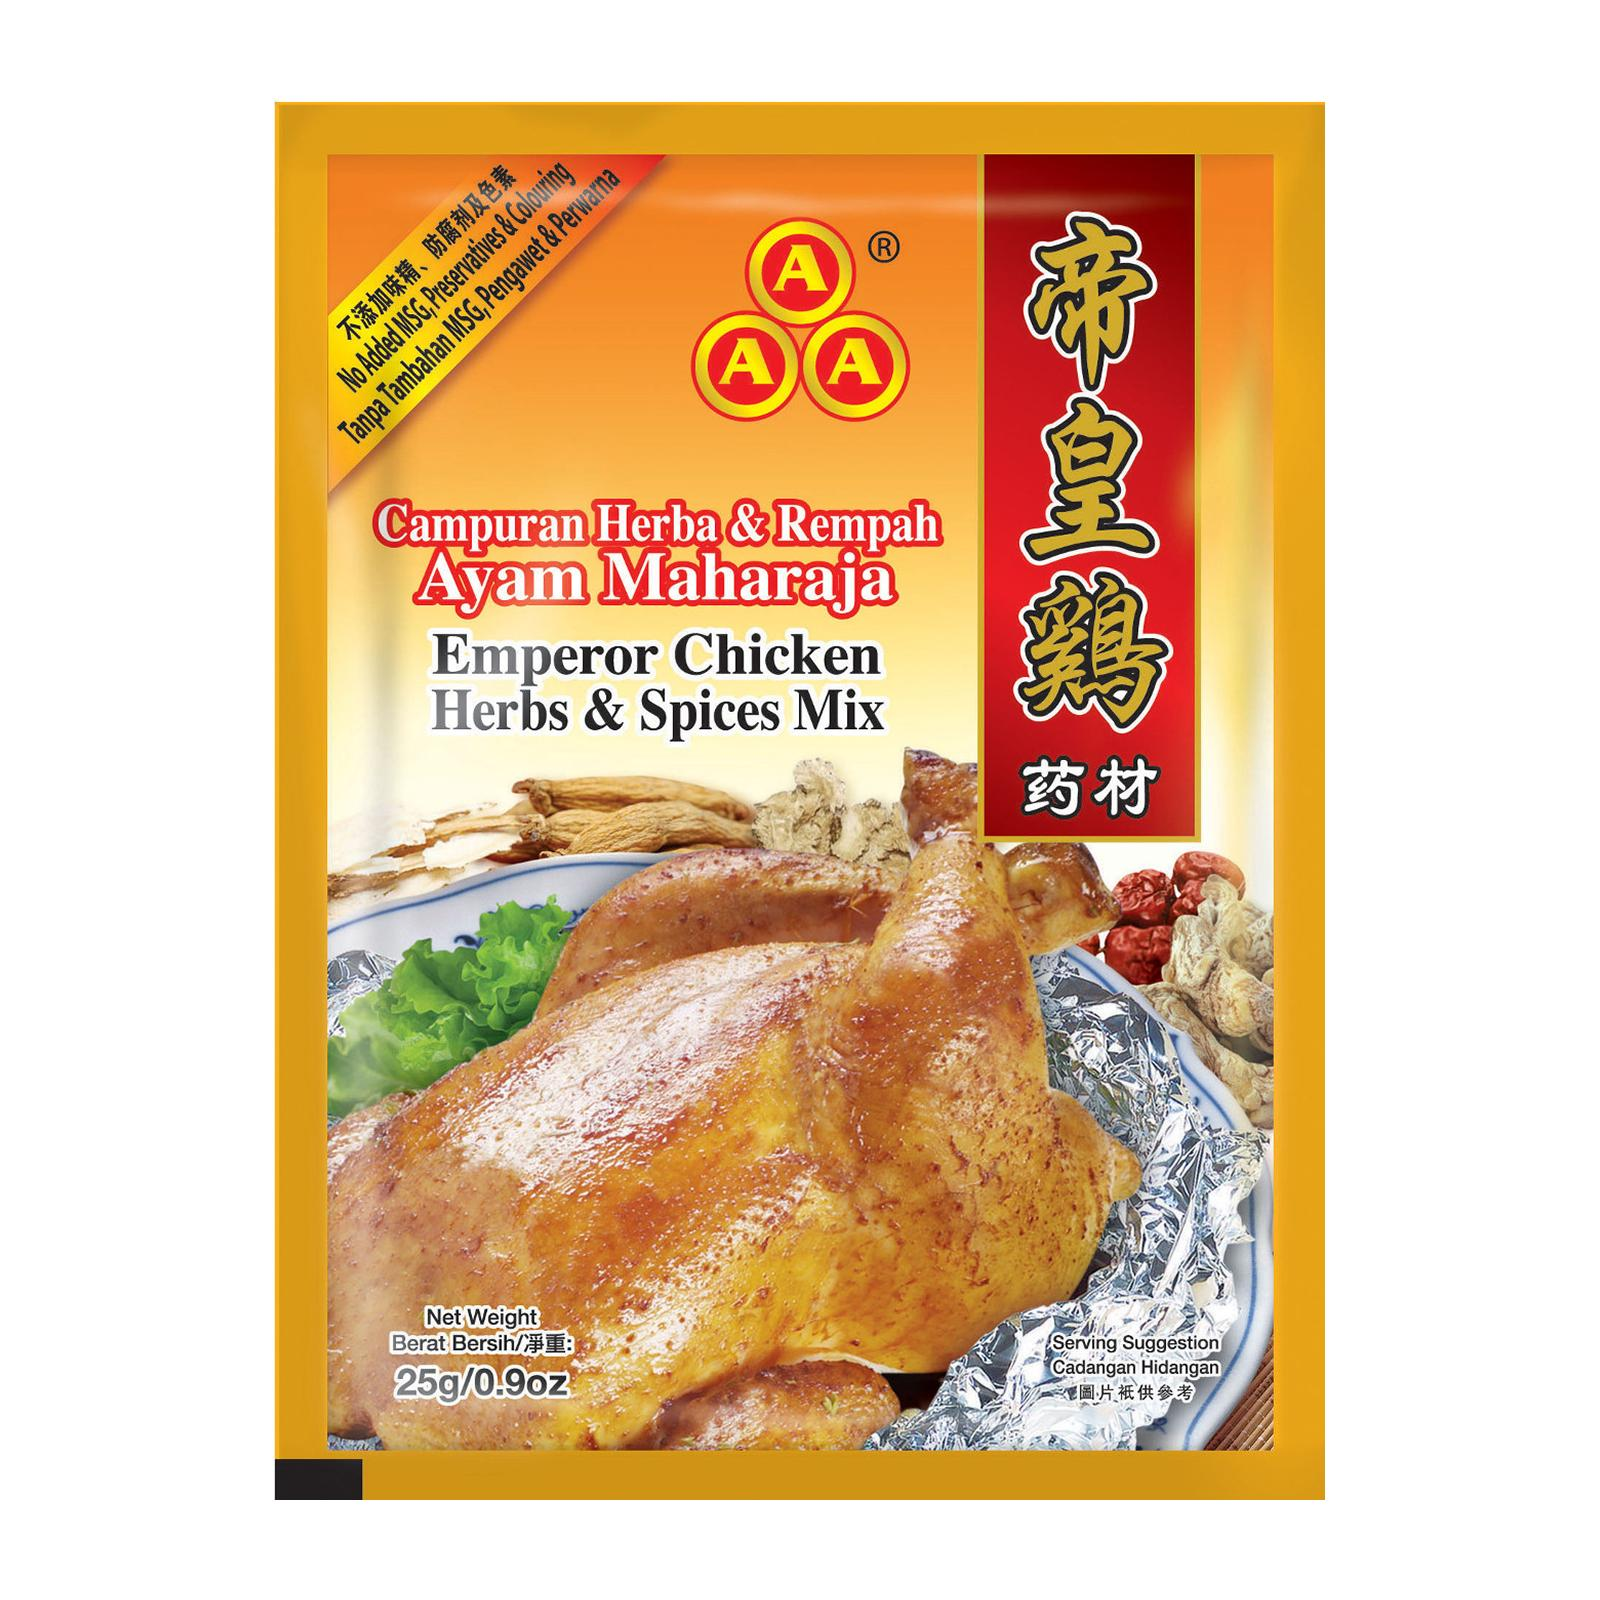 3A Emperor Chicken Herbs and Spices Mix